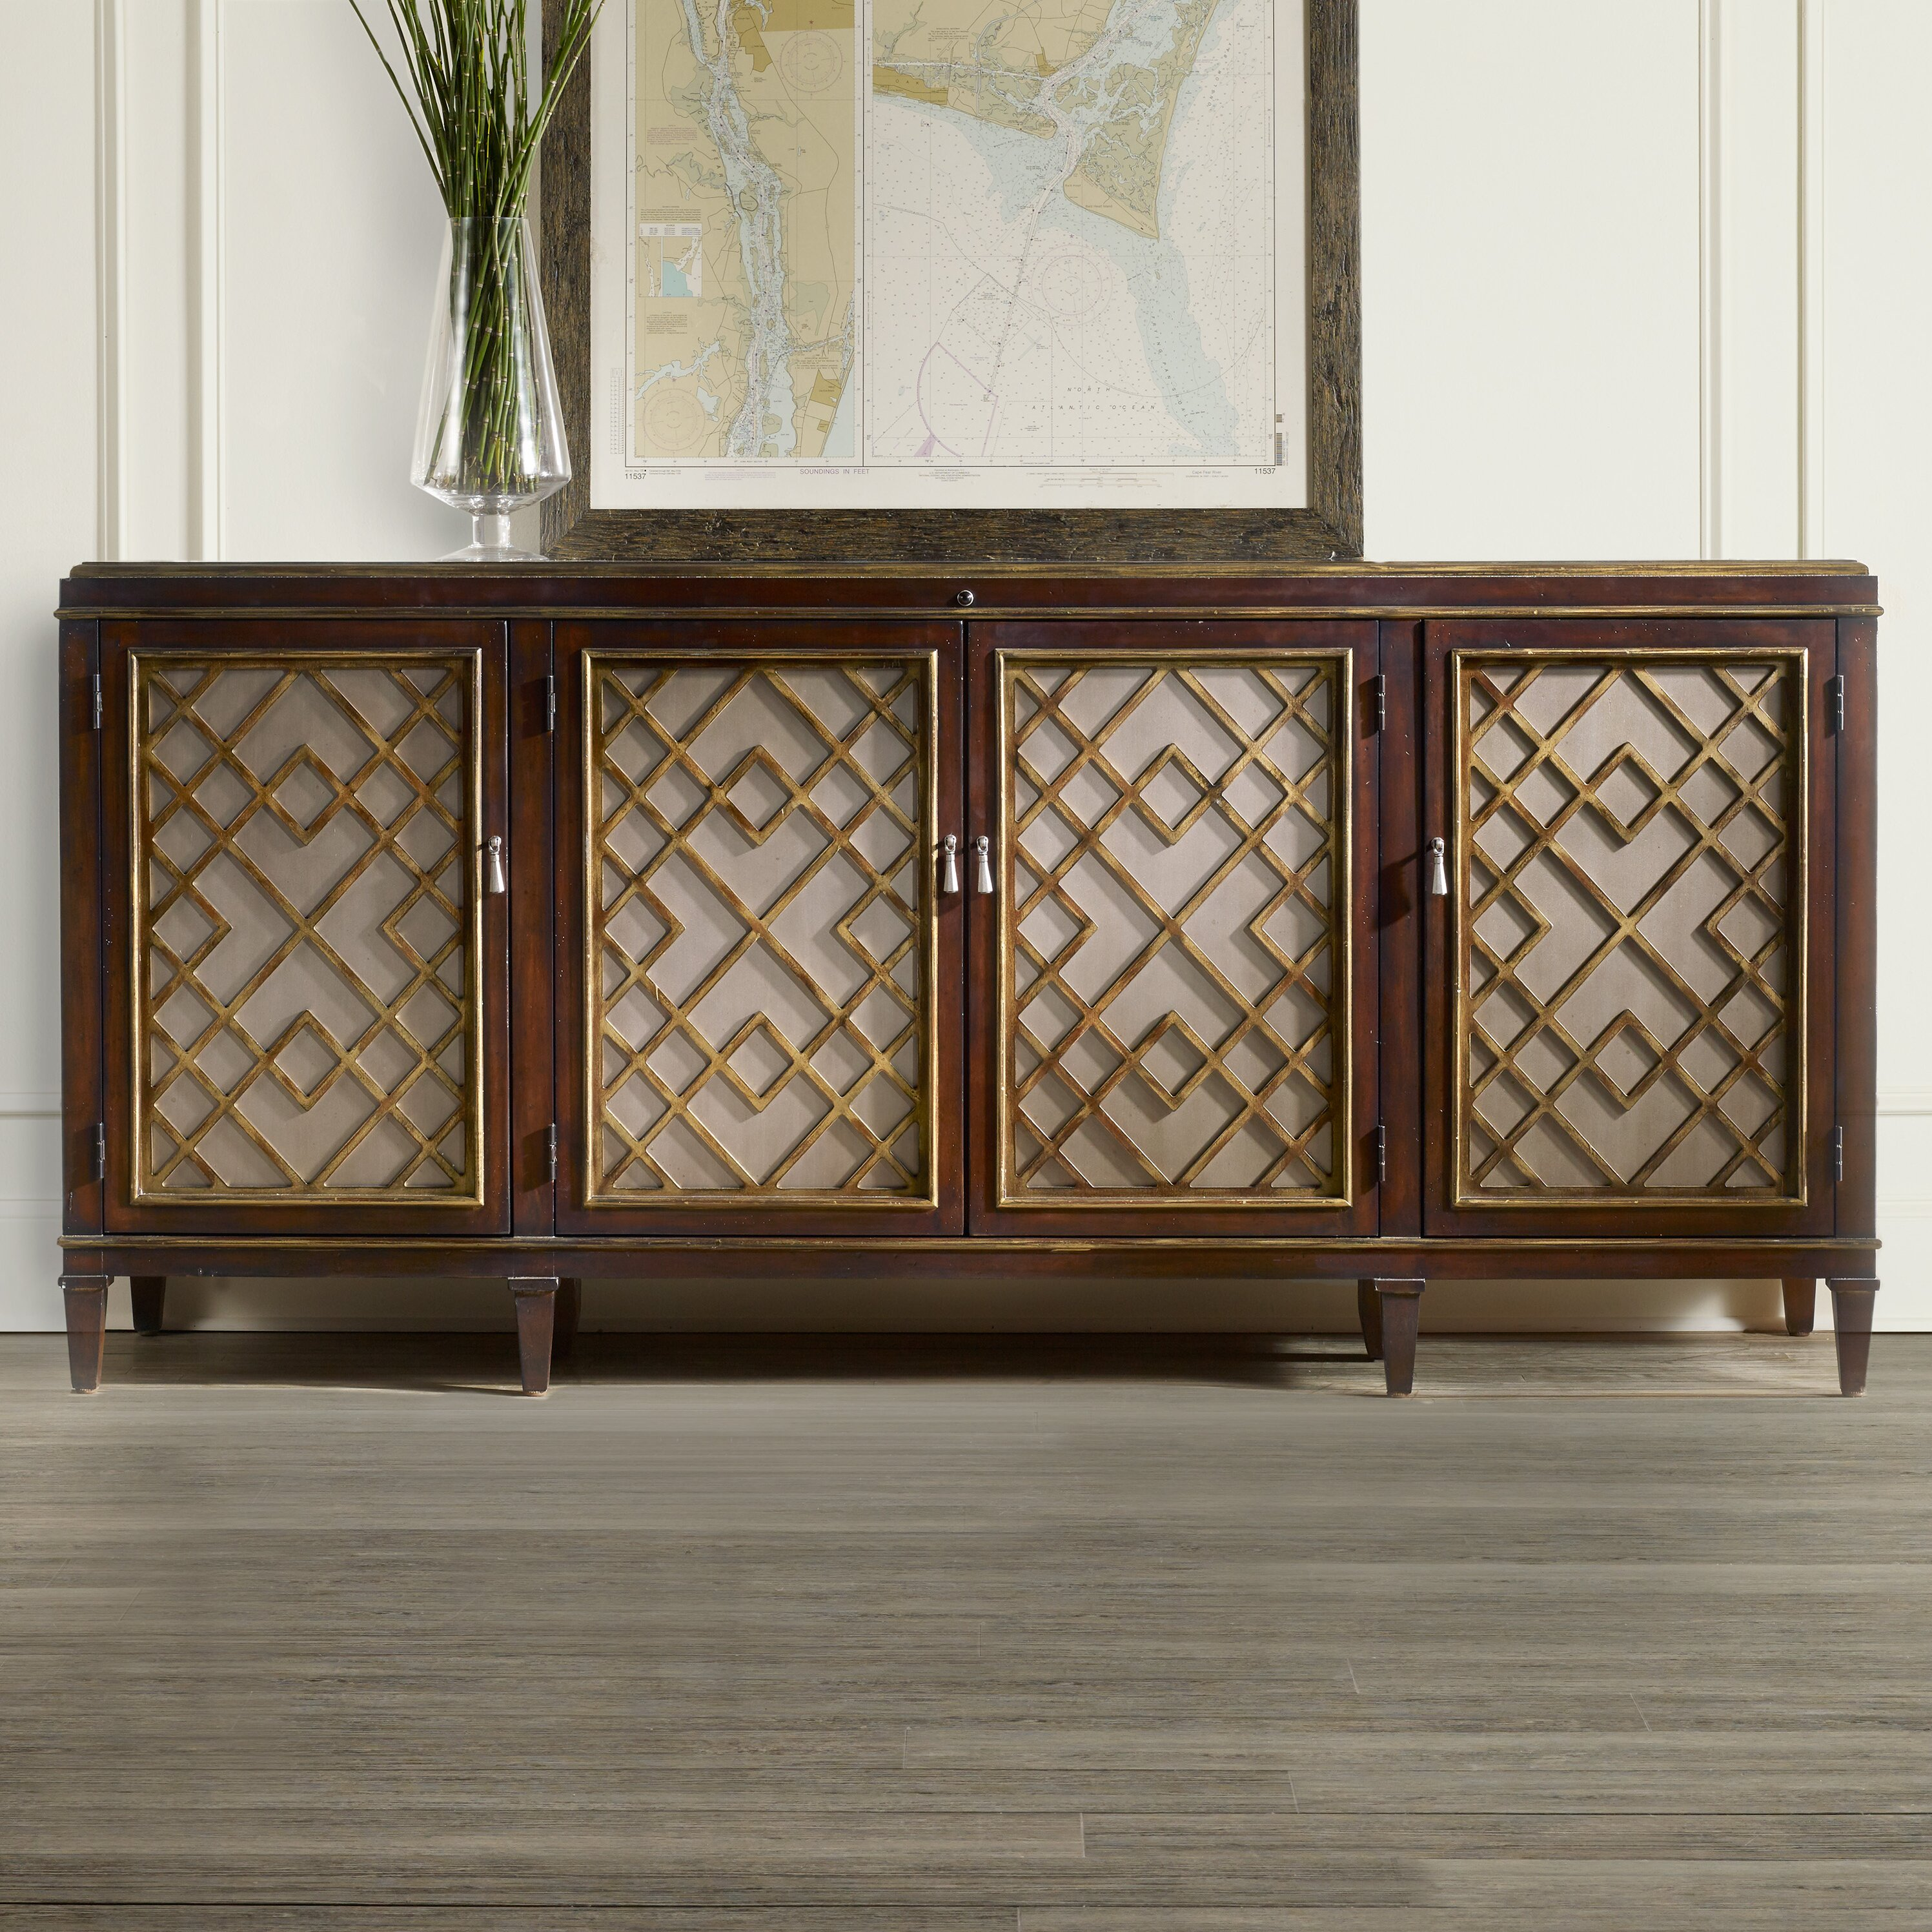 costco room tv com wayfair with chests entertainment cabinet bedroom ikea dark furniture tone ashley designs gaenice stylish stands media tall for inspired chest drawers also elegant dresser cheap gianna cart living